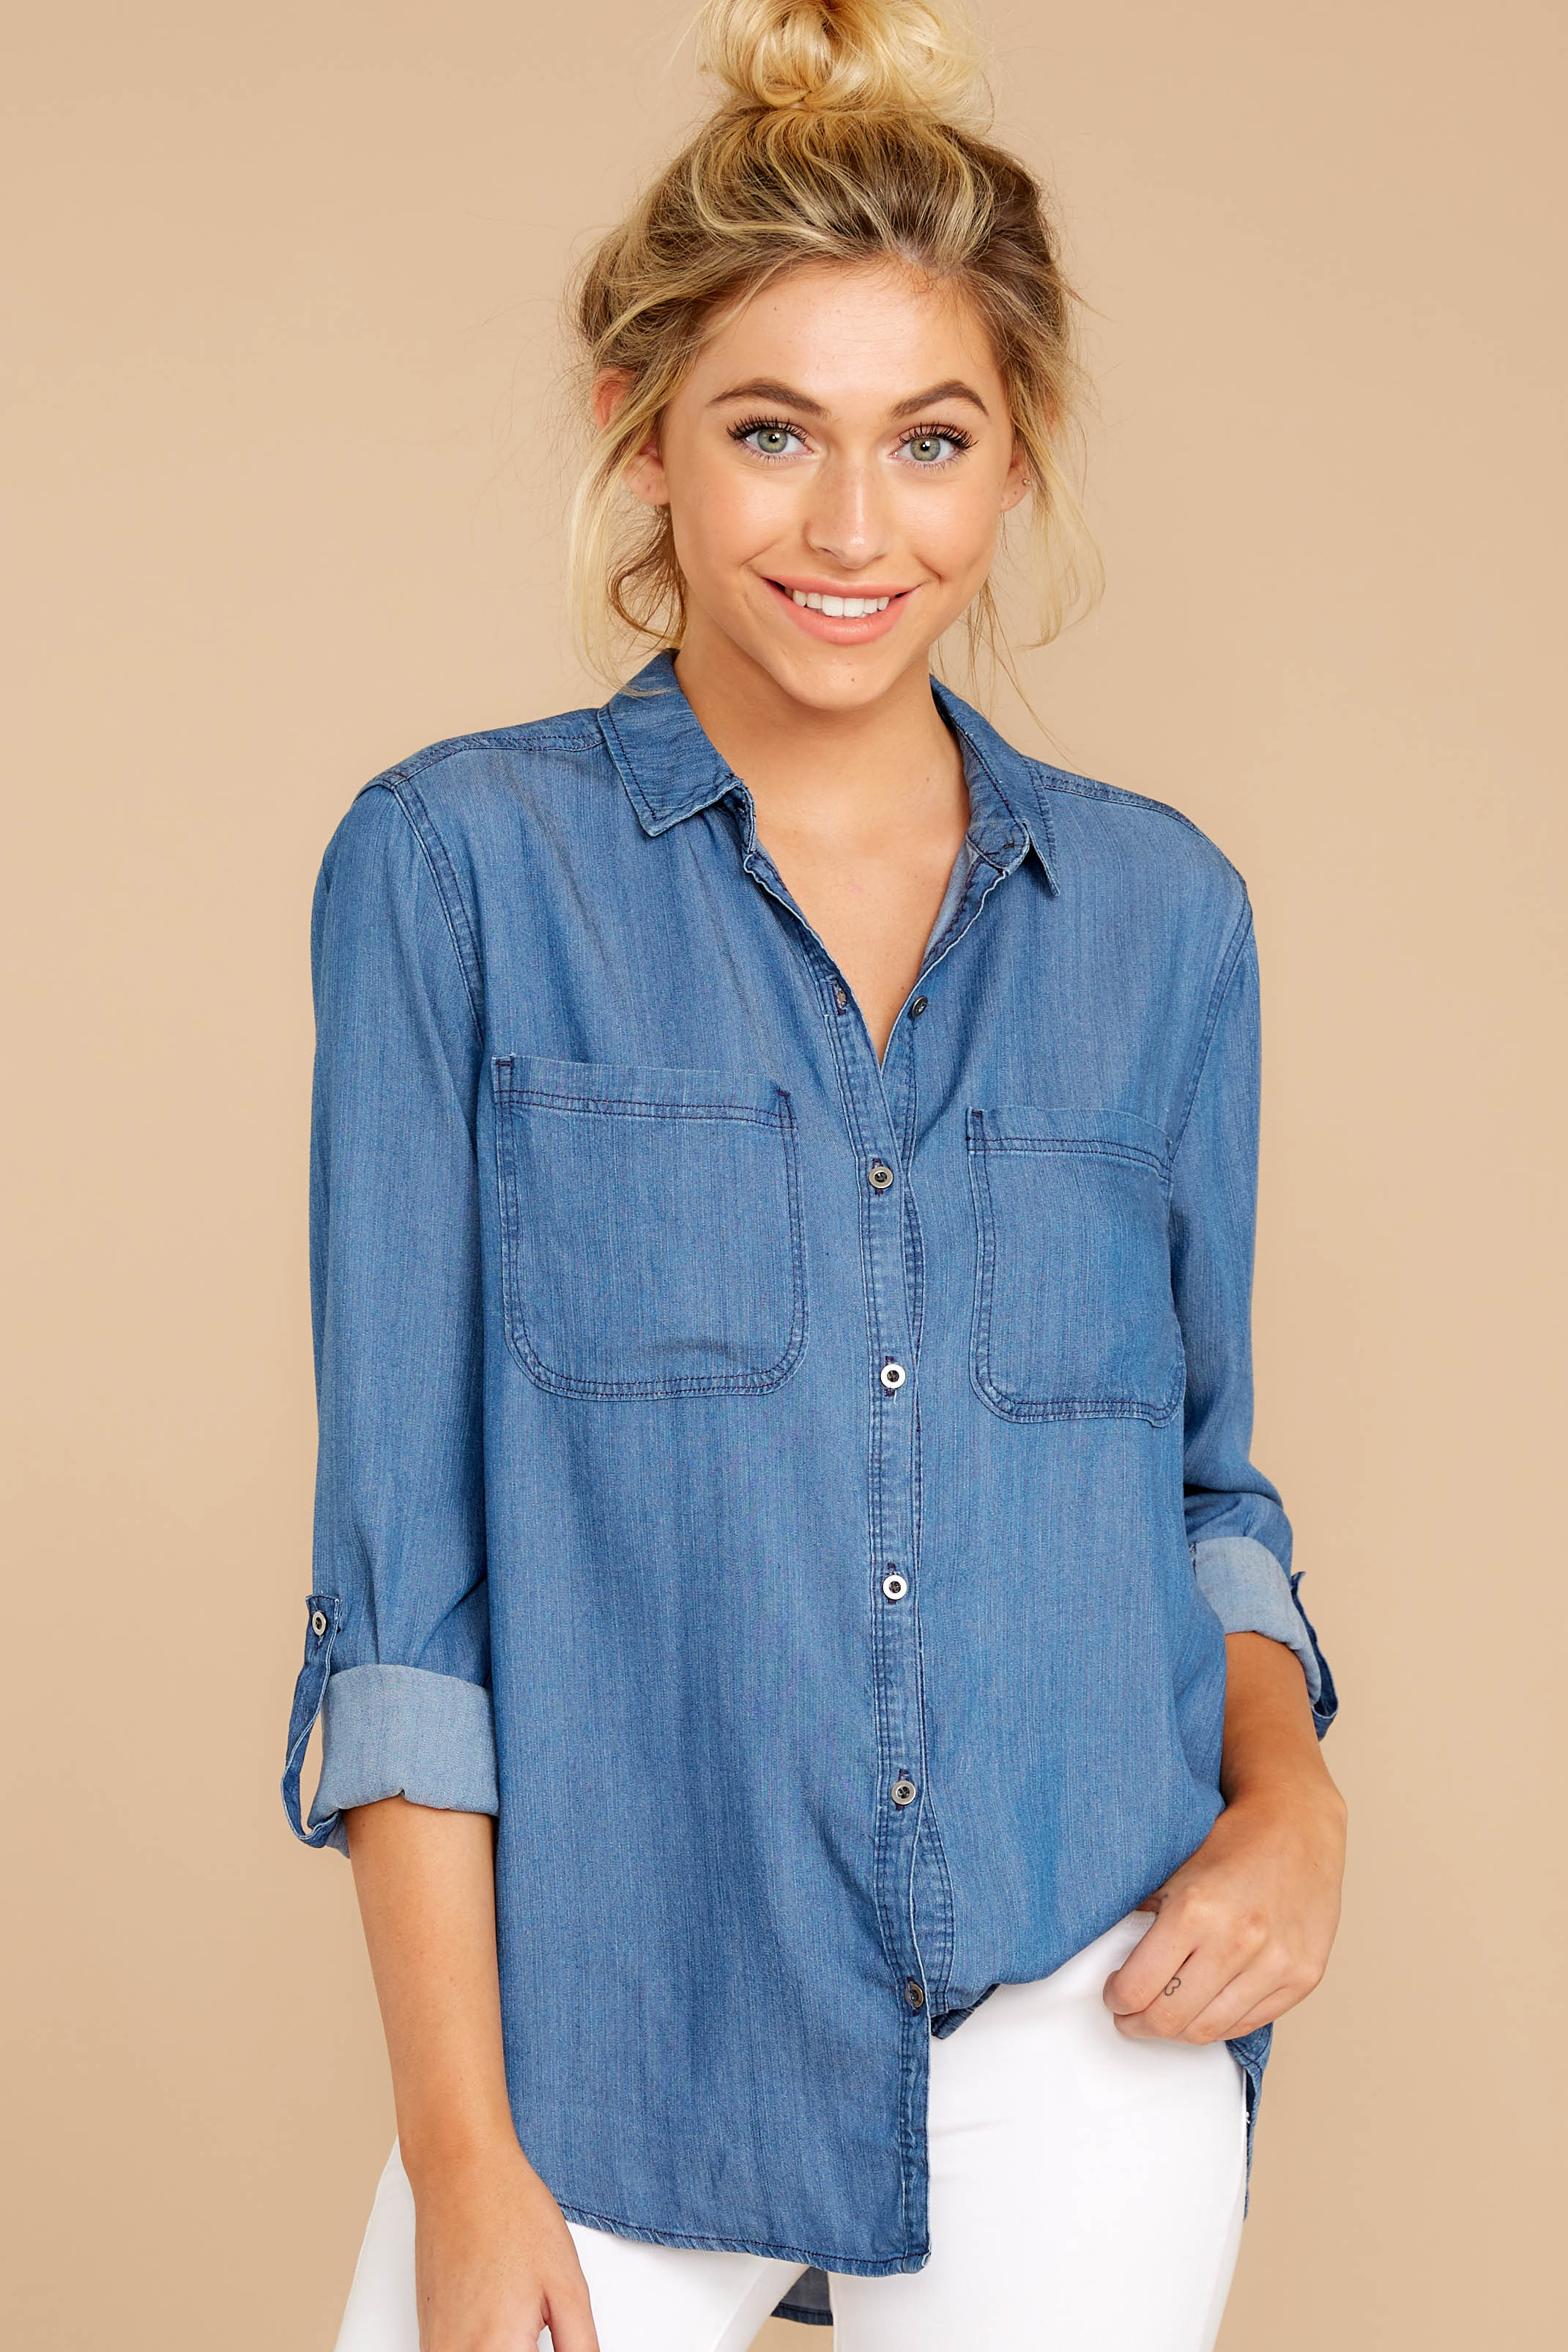 1 Wander Free Chambray Button Up Top at reddress.com